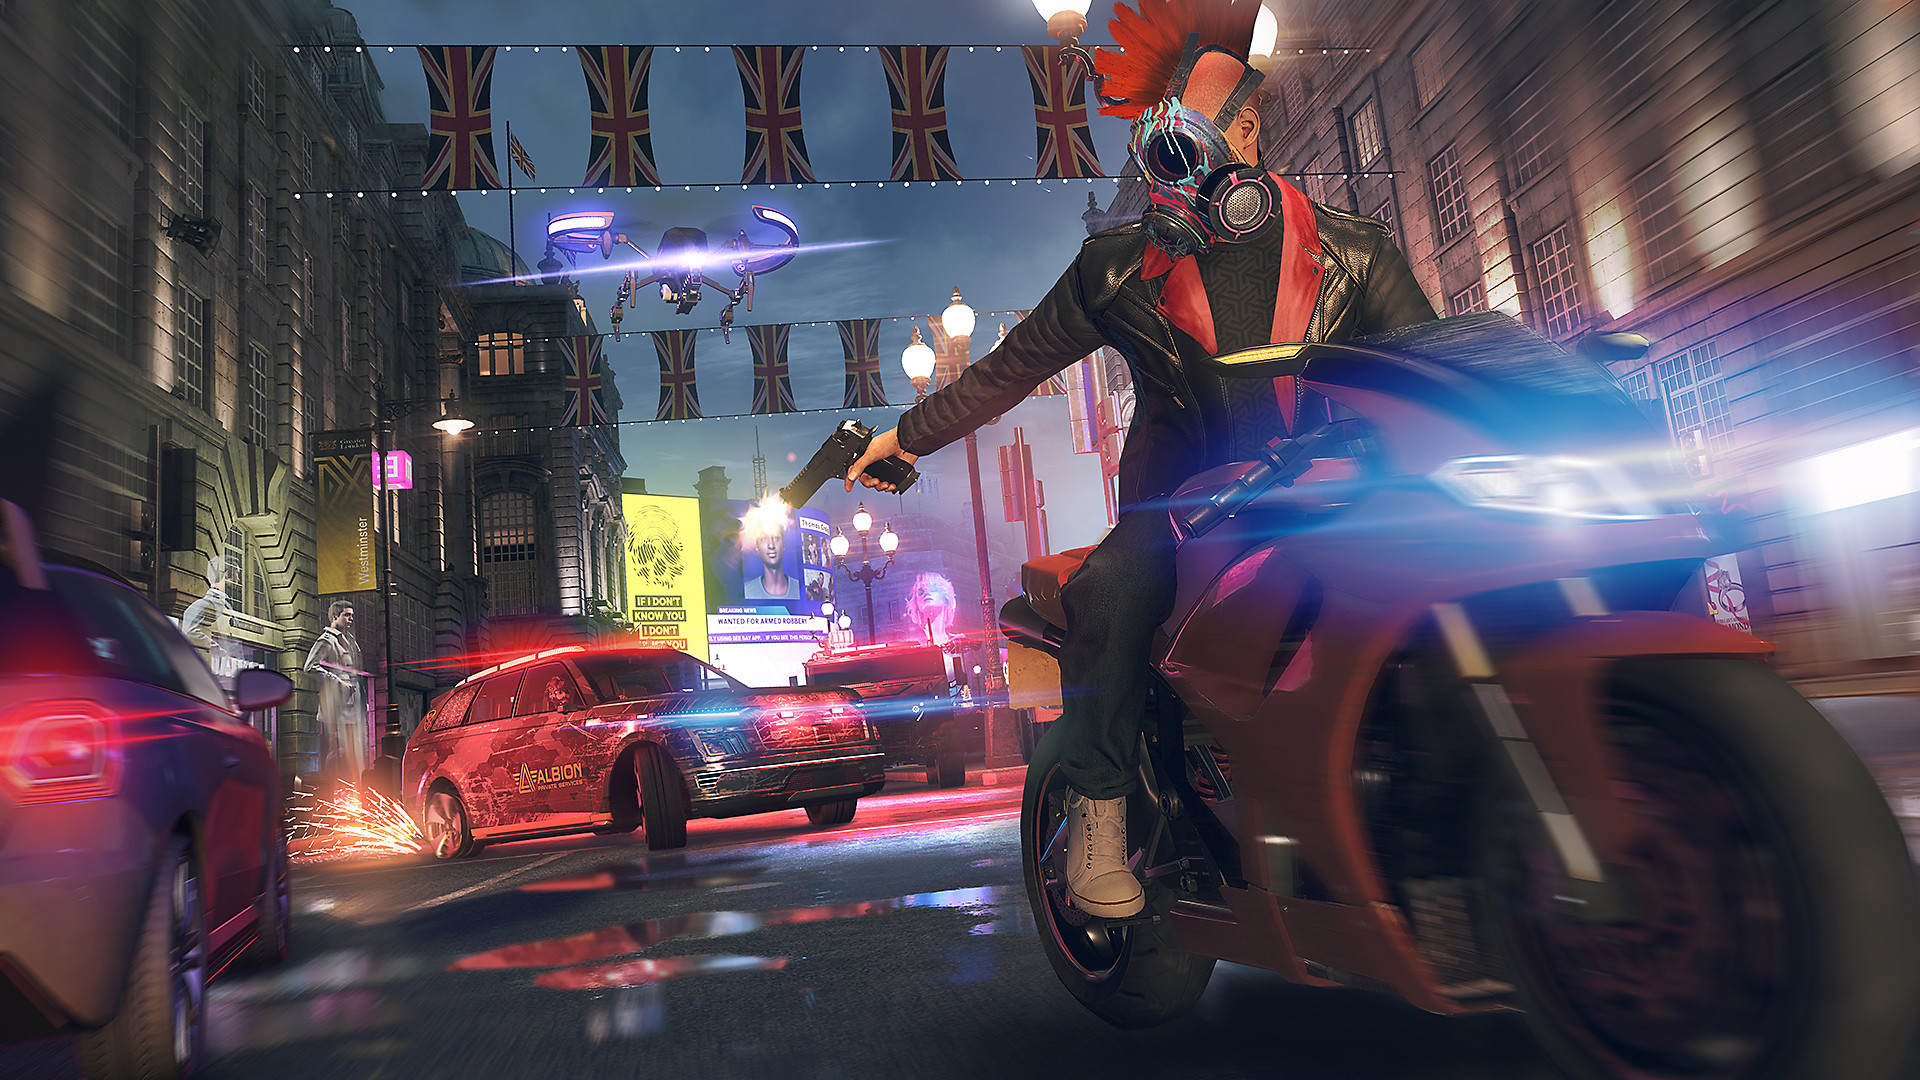 Watch Dogs Legion screenshot - Character on a motorcycle shooting an enemy car's tire